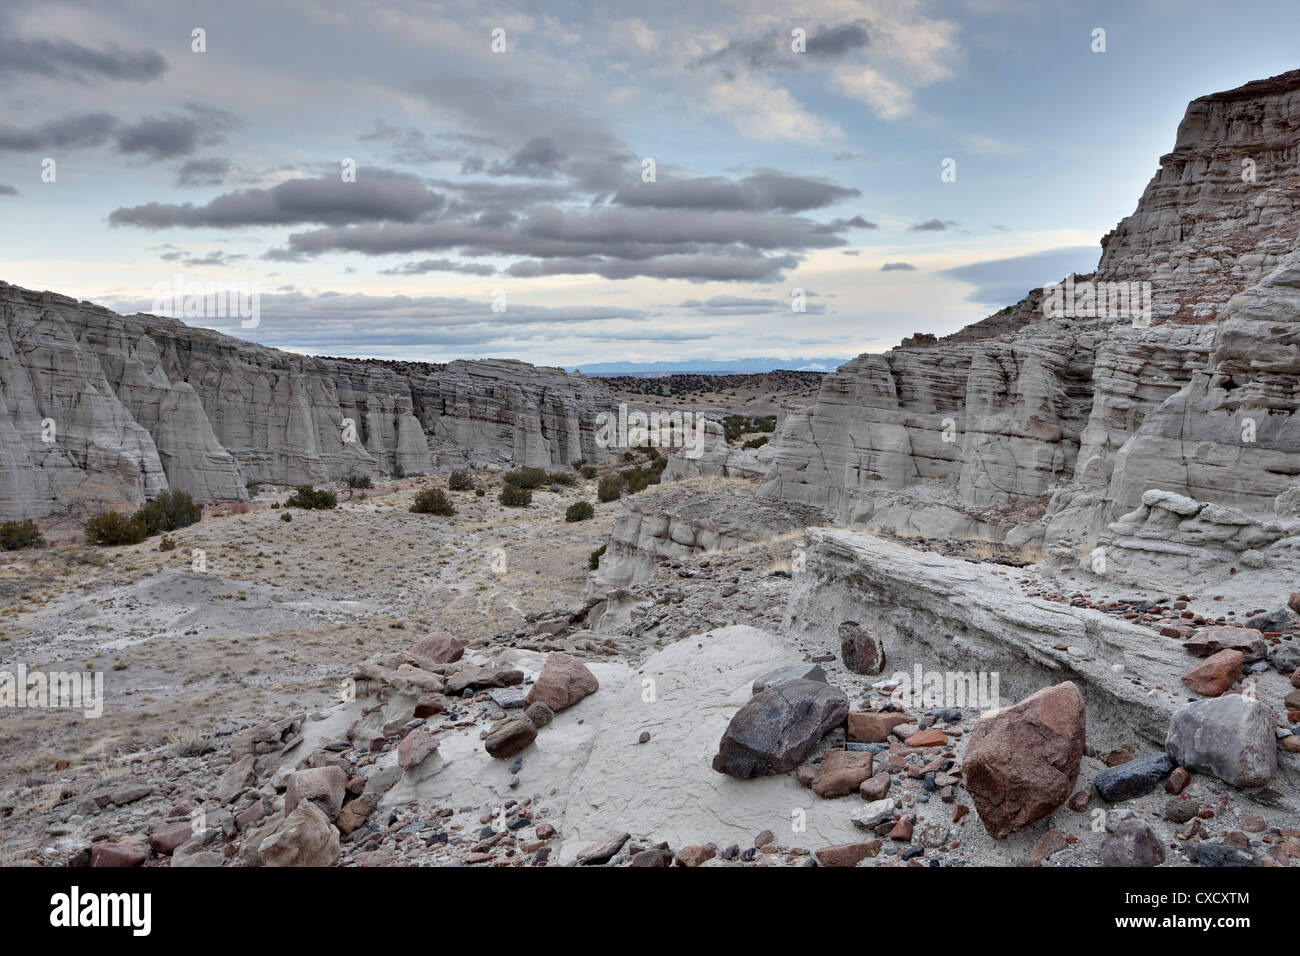 White rock badlands, Carson National Forest, New Mexico, United States of America, North America - Stock Image